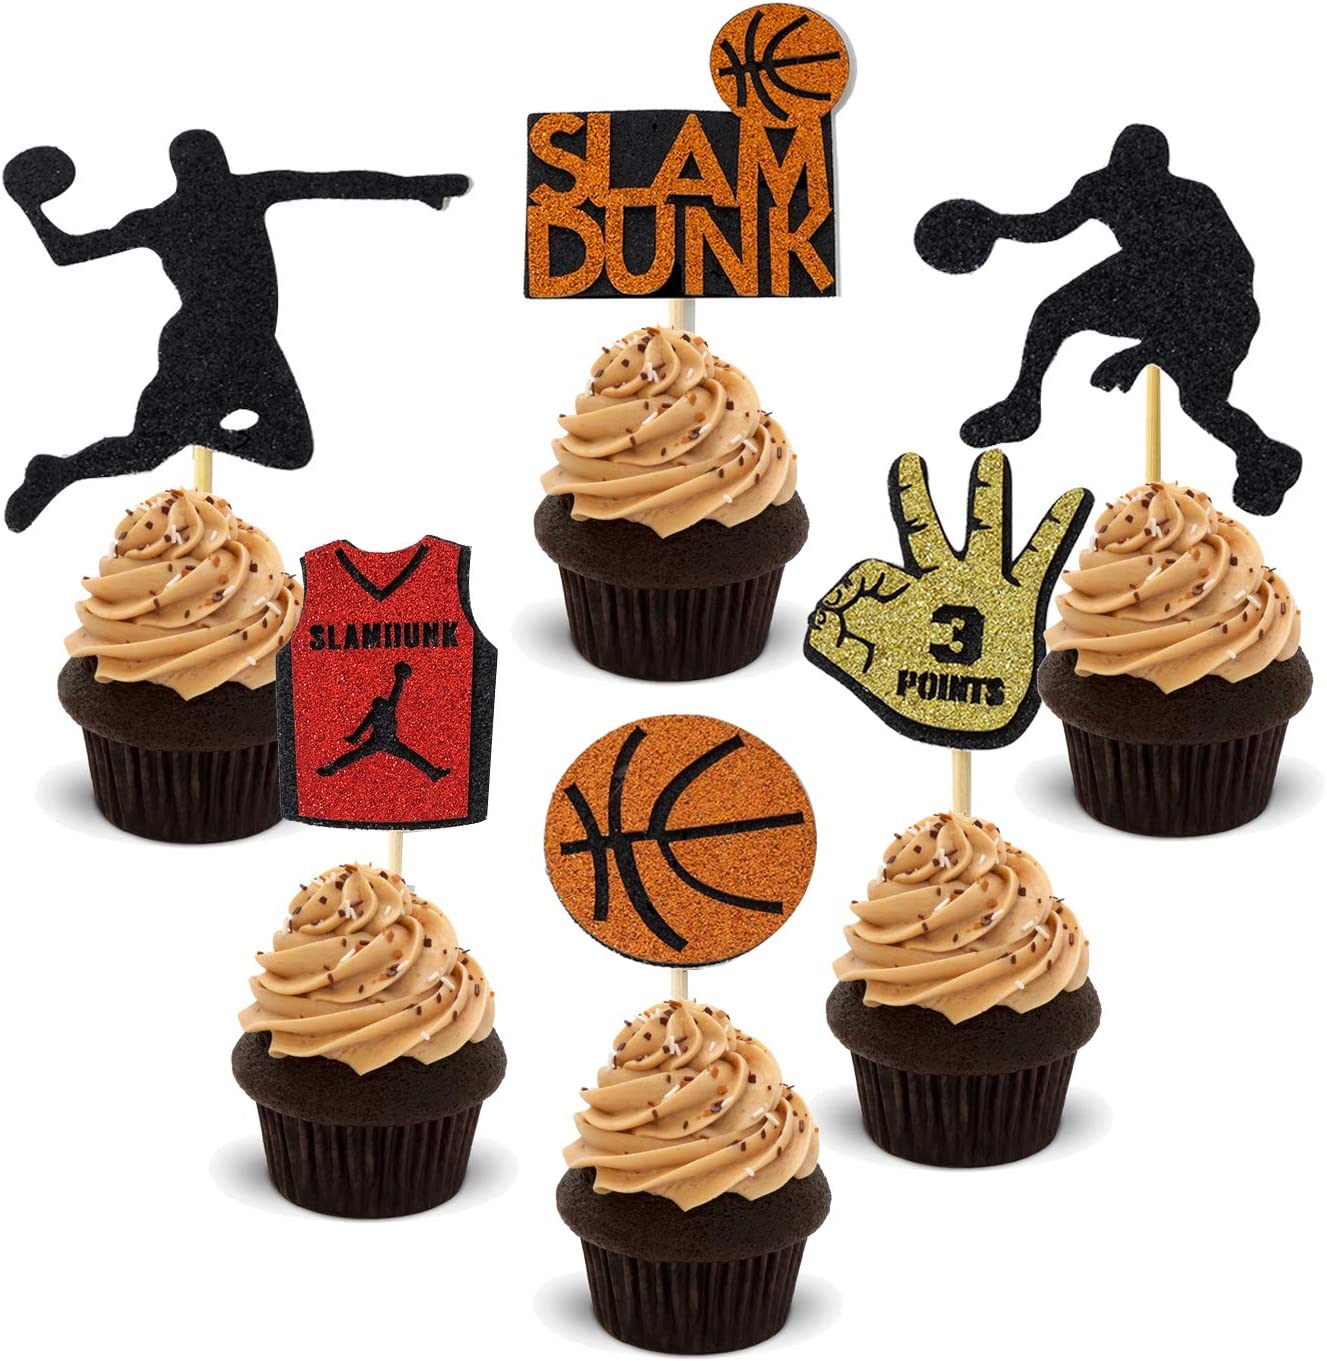 24PCS Basketball Cupcake Toppers Basketball Player Slam Dunk Decoration Fruit Food Dessert Favor Black Glitter Cake Toppers Picks for Gold Basketball Sport Birthday Theme Party